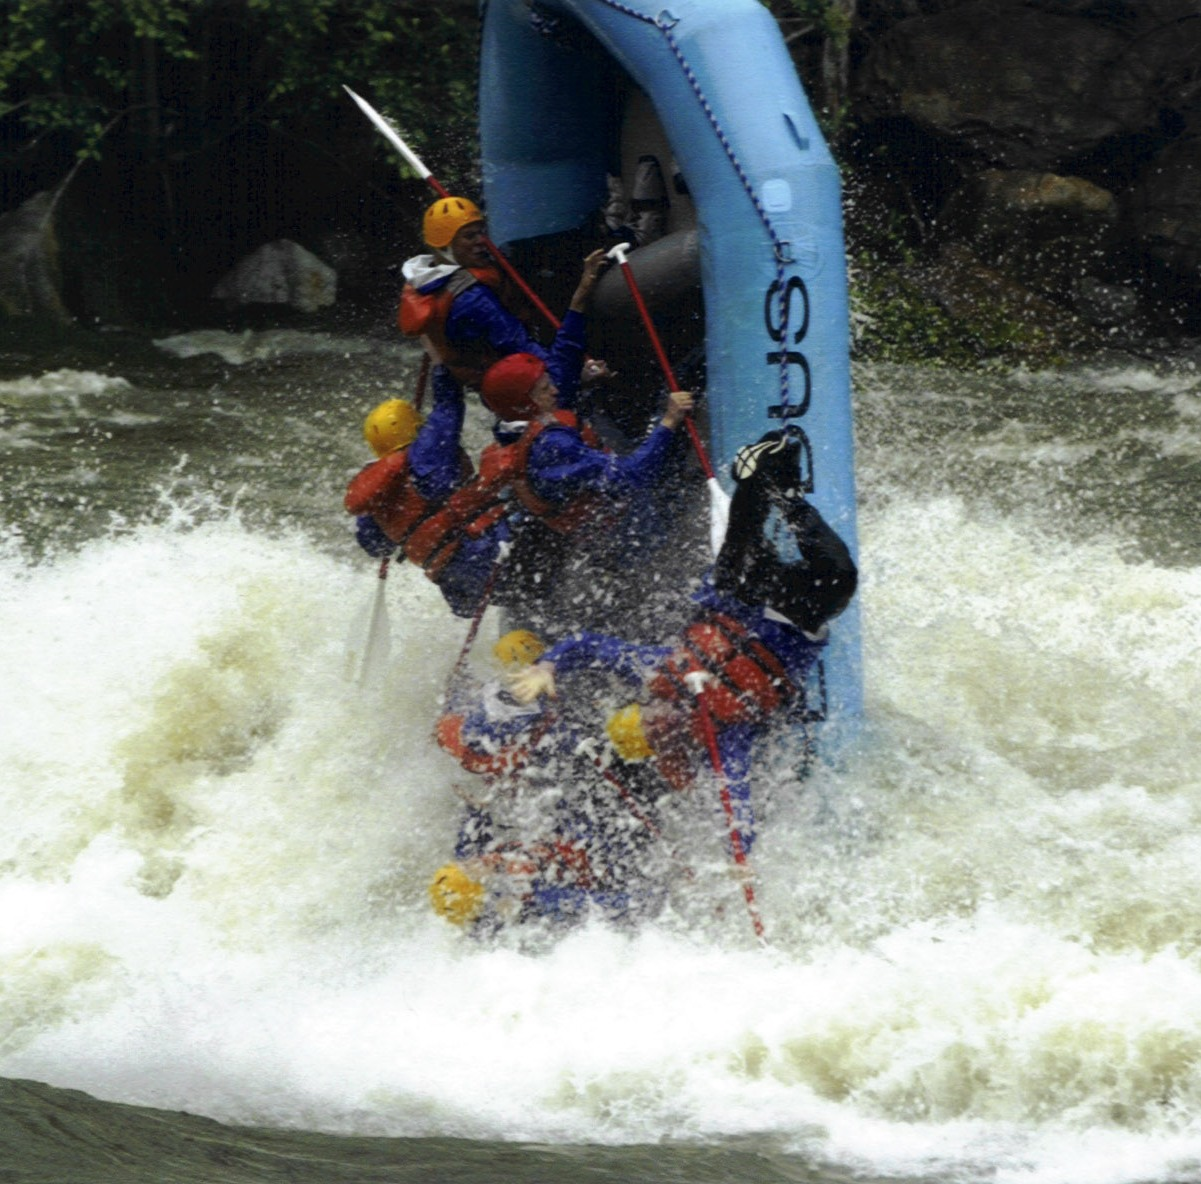 Bigwater Blowout River Festival offers the thrill of high-water rafting